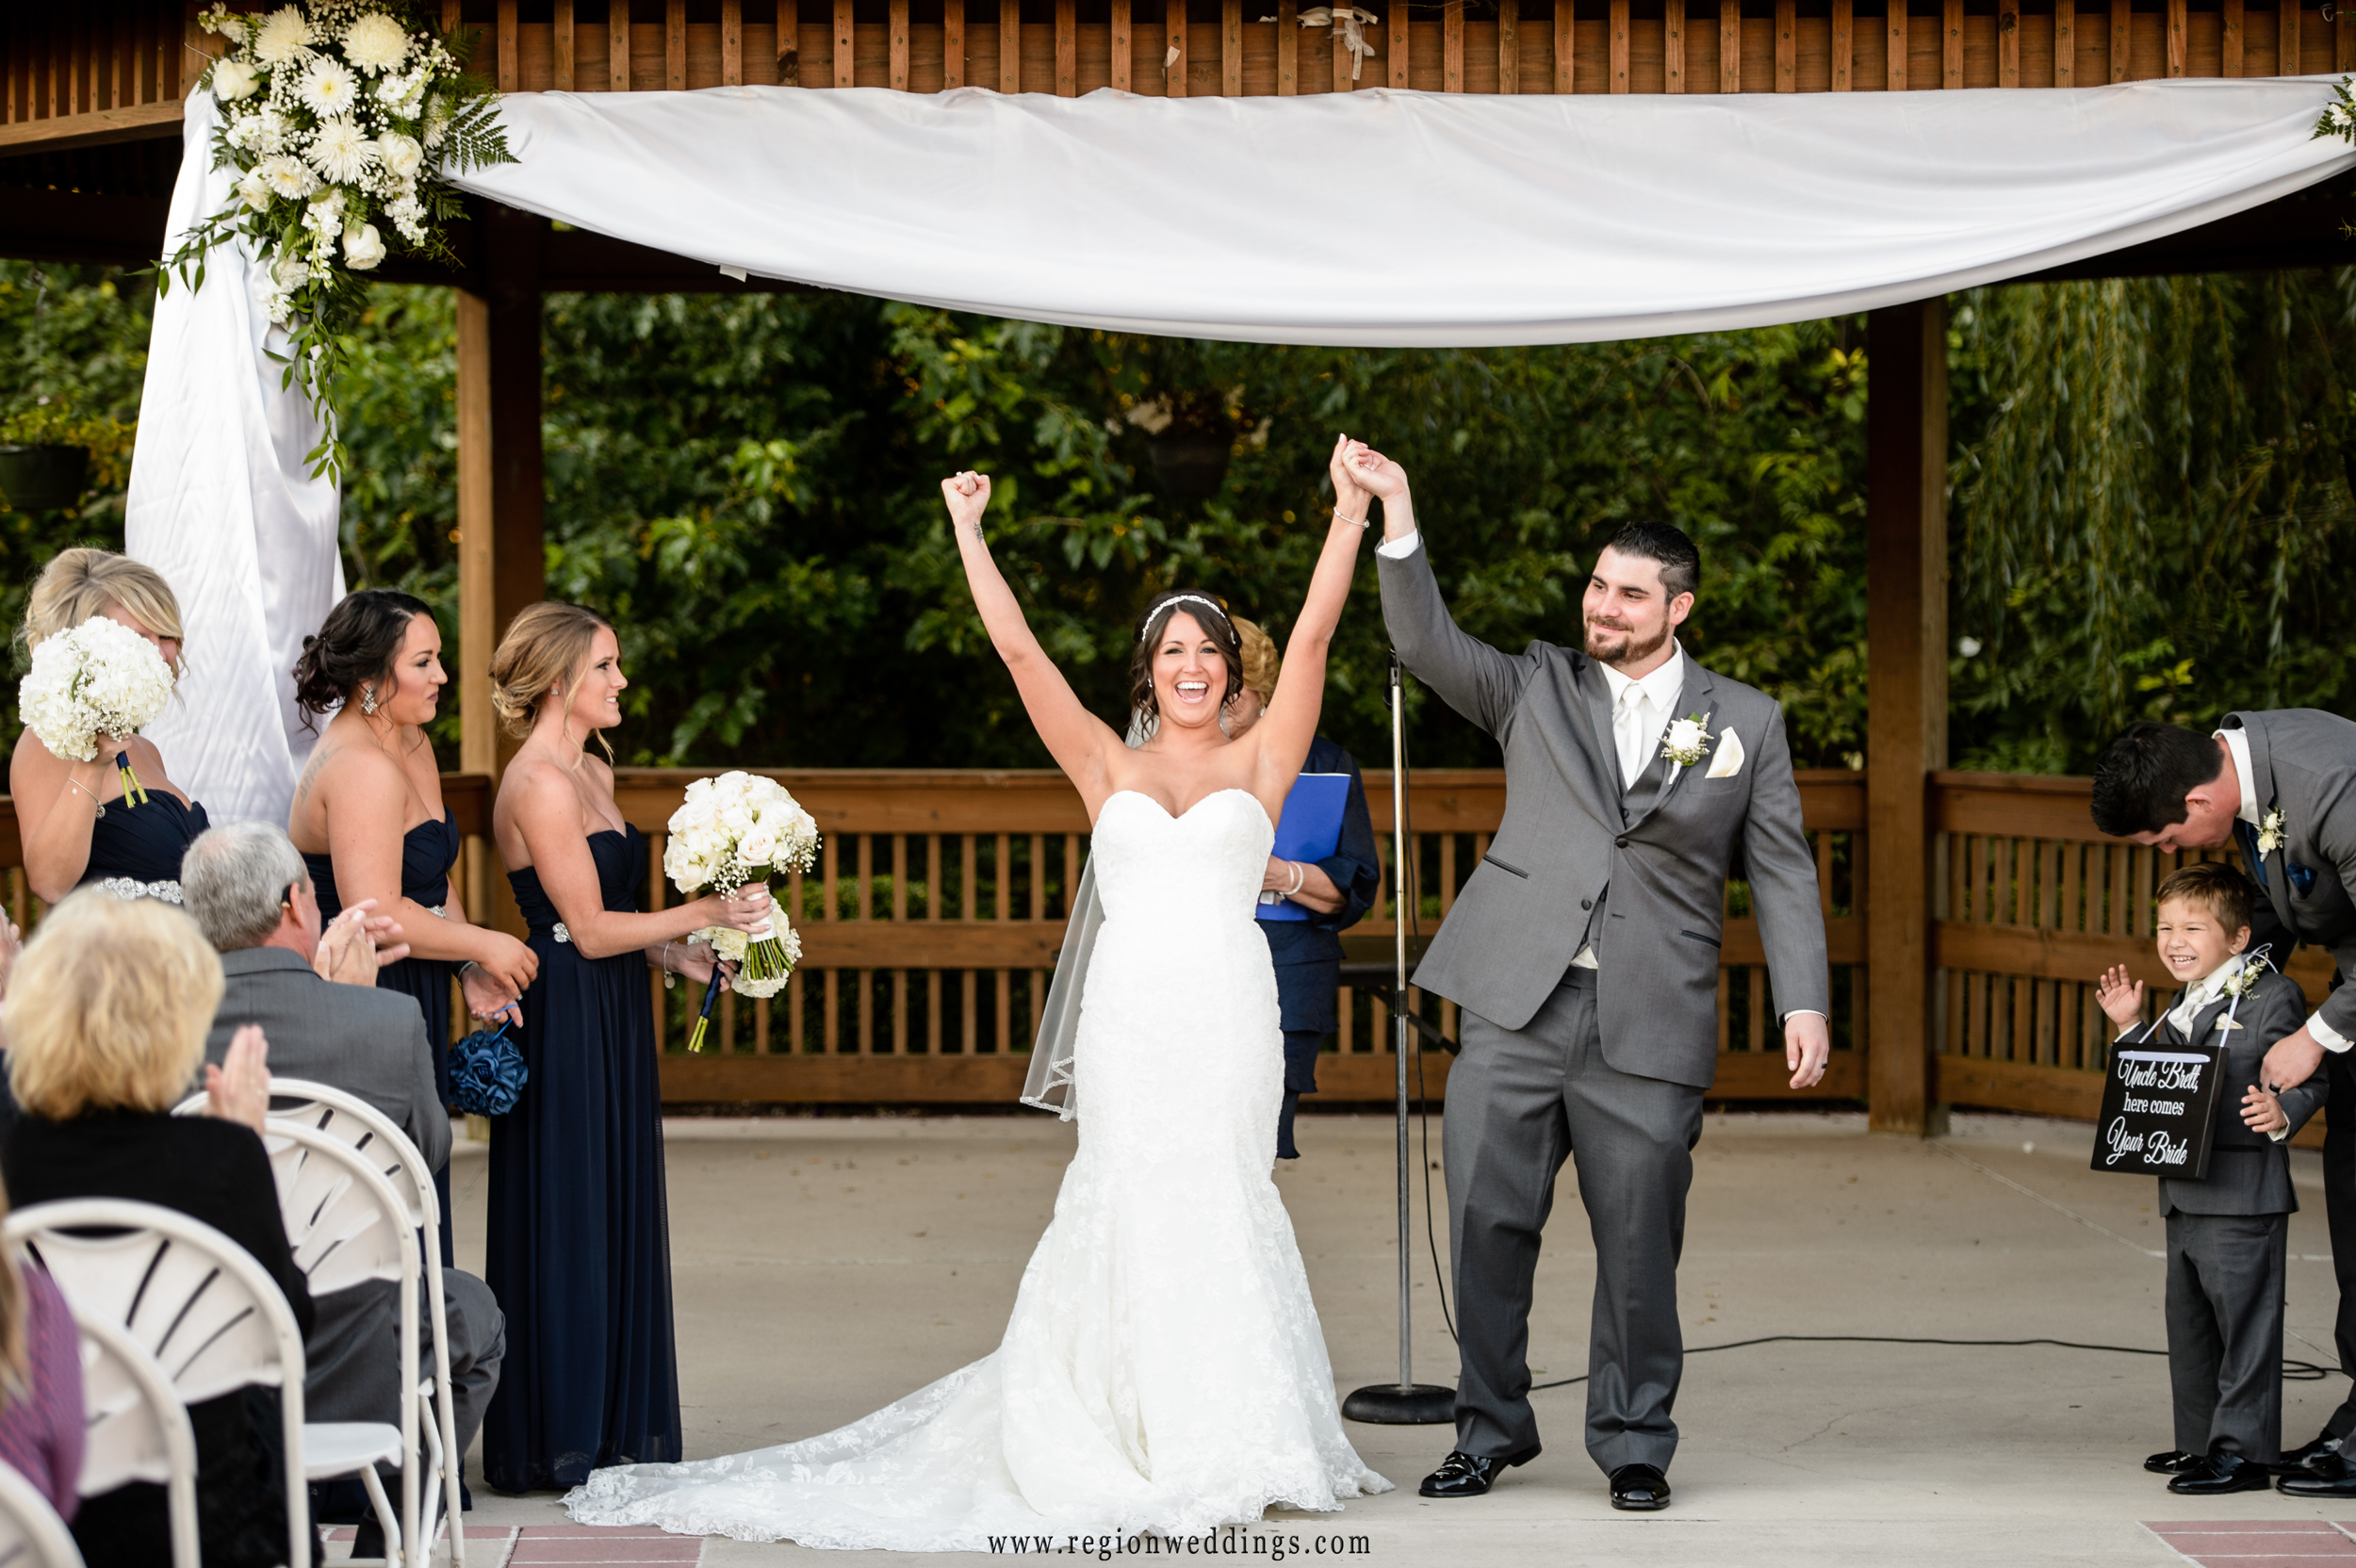 The bride and groom celebrate at their outdoor ceremony at Avalon Manor.